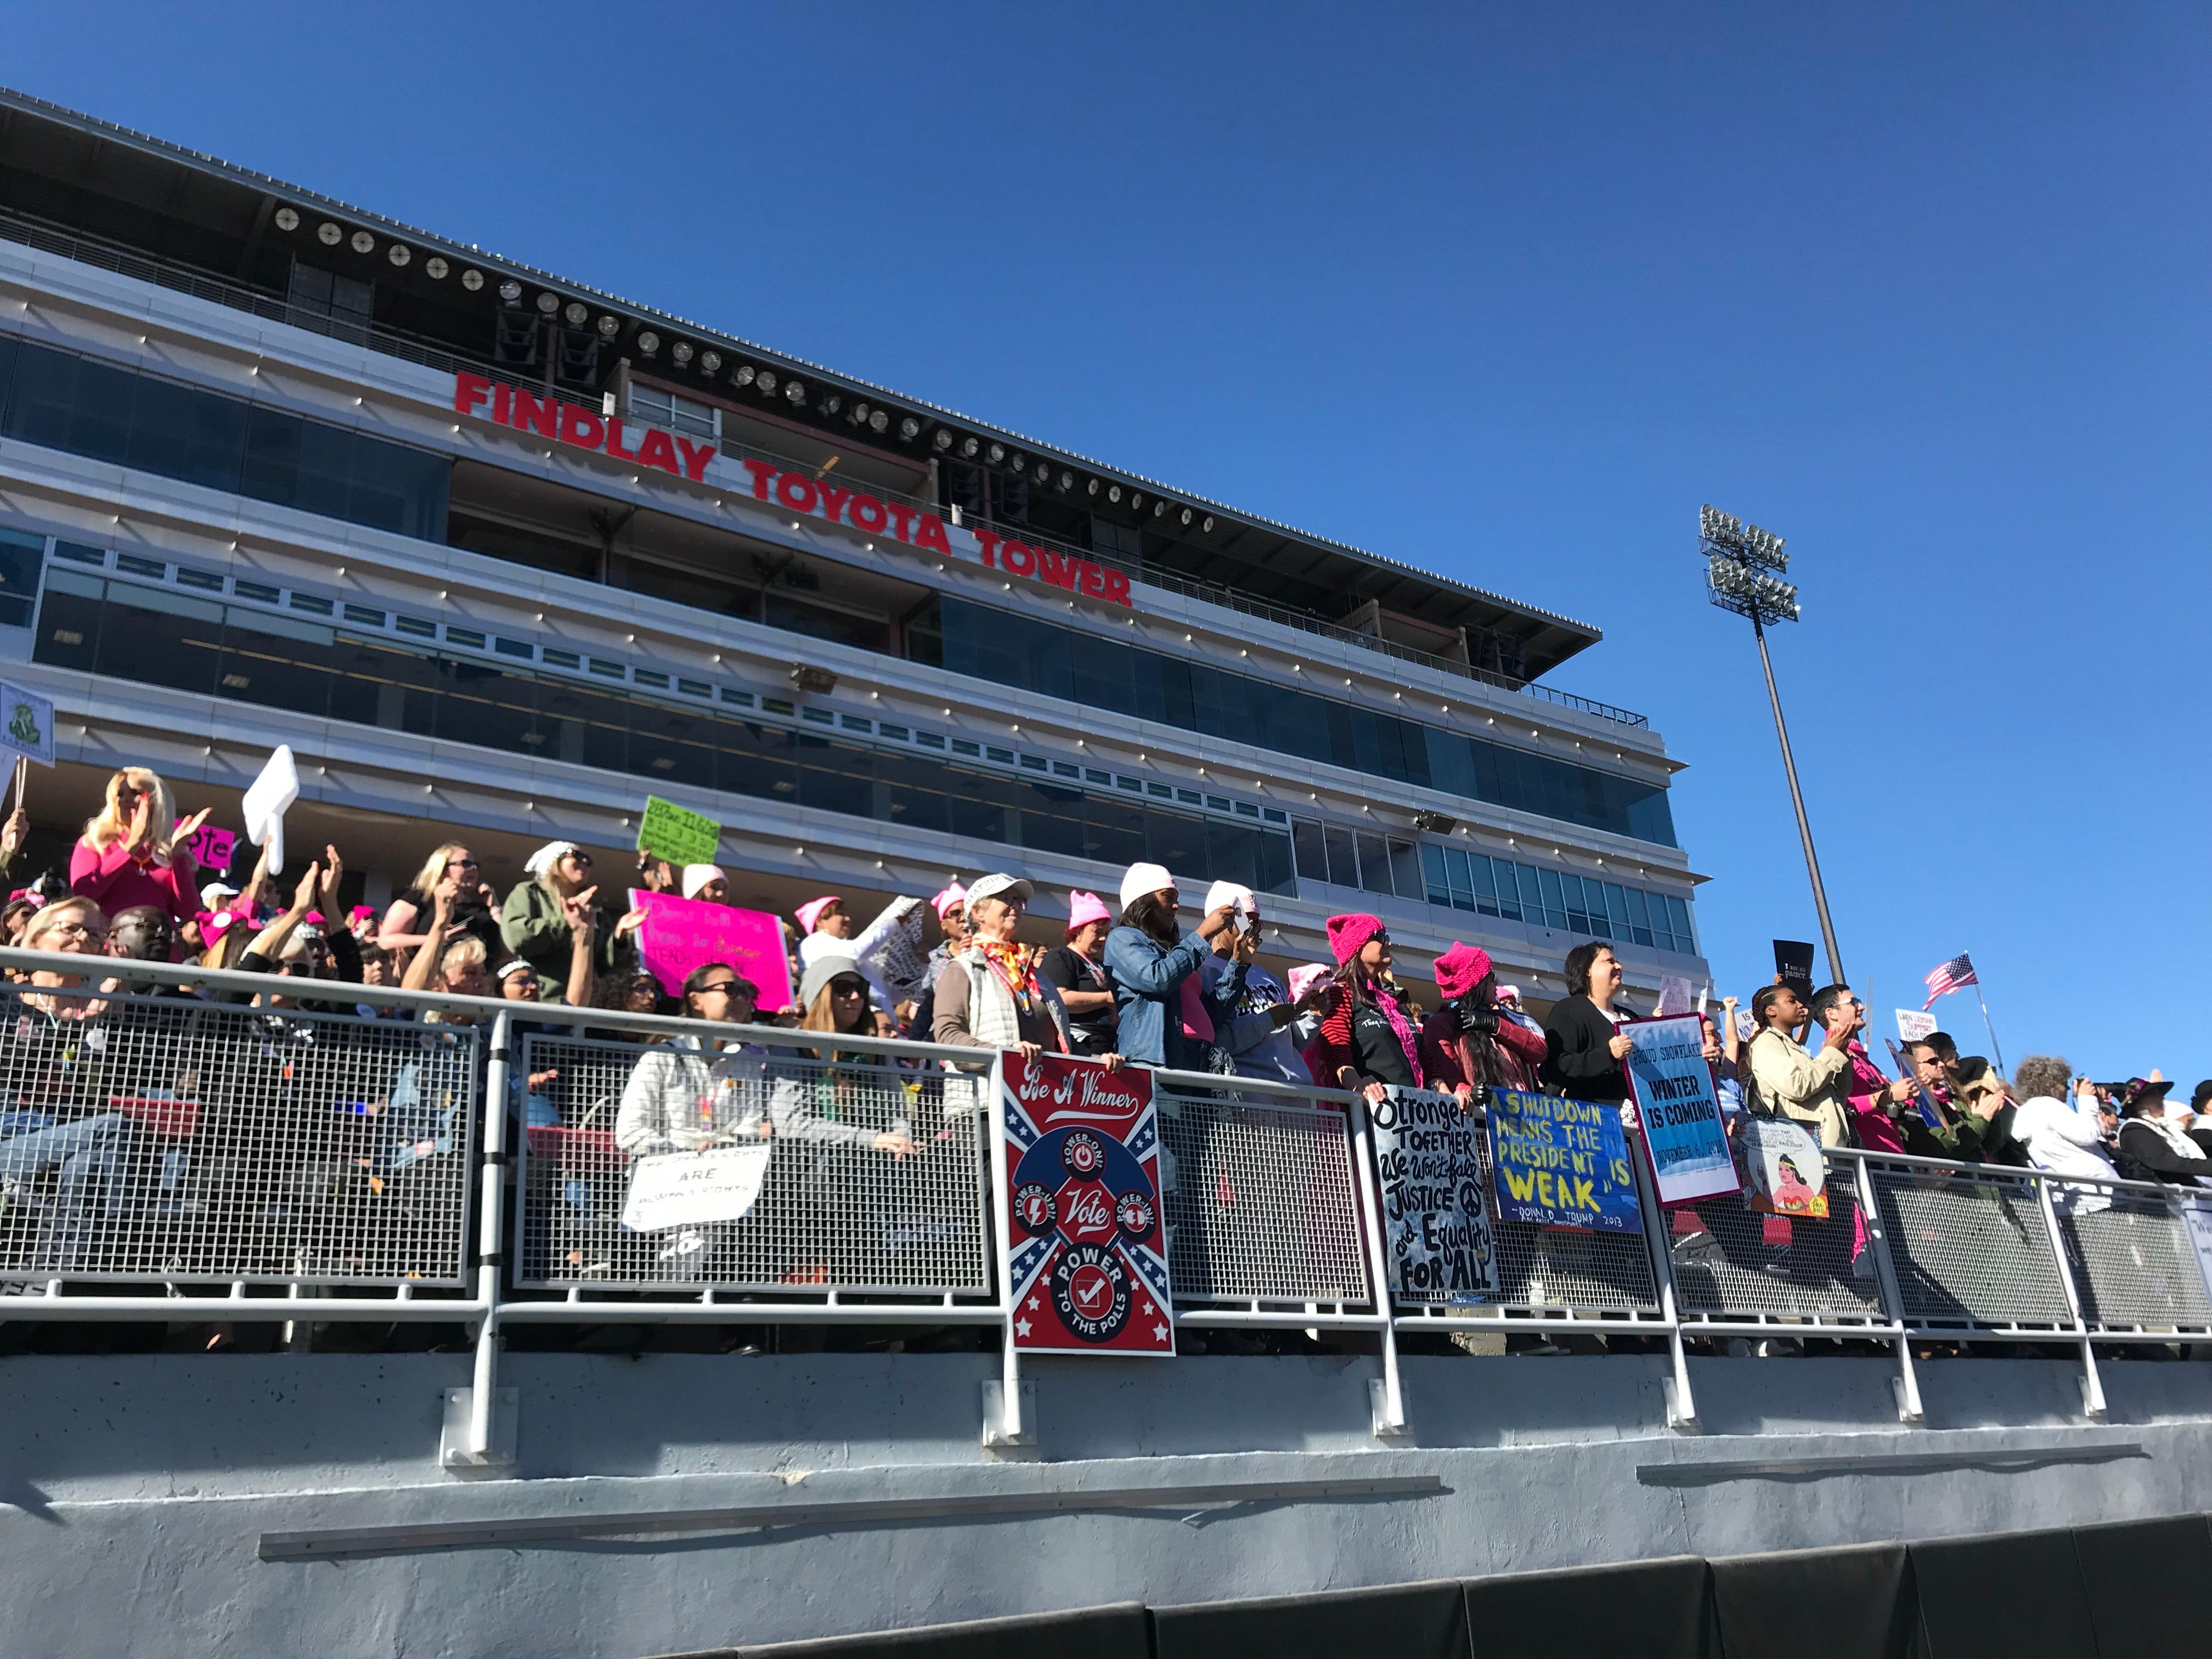 Attendees at the Women's Voter March Rally at Sam Boyd Stadium were encouraged to listen to speakers and performers on various issues, including immigration, sexual assault, gender and race equality at the Women's Voter March Rally at Sam Boyd Stadium on Sunday, Jan. 21, 2018. (Kundell Nunley | KSNV)<p></p>